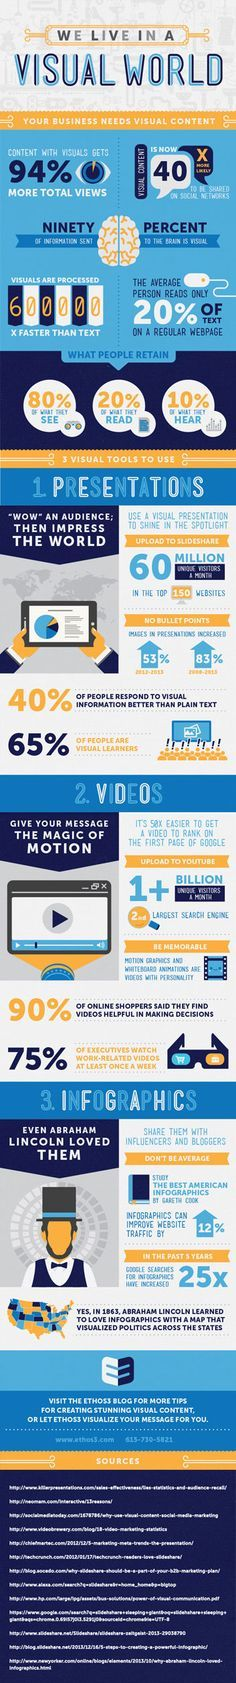 Why We're More Likely To Remember Content With Images And Video (Infographic) | Fast Company | Business + Innovation